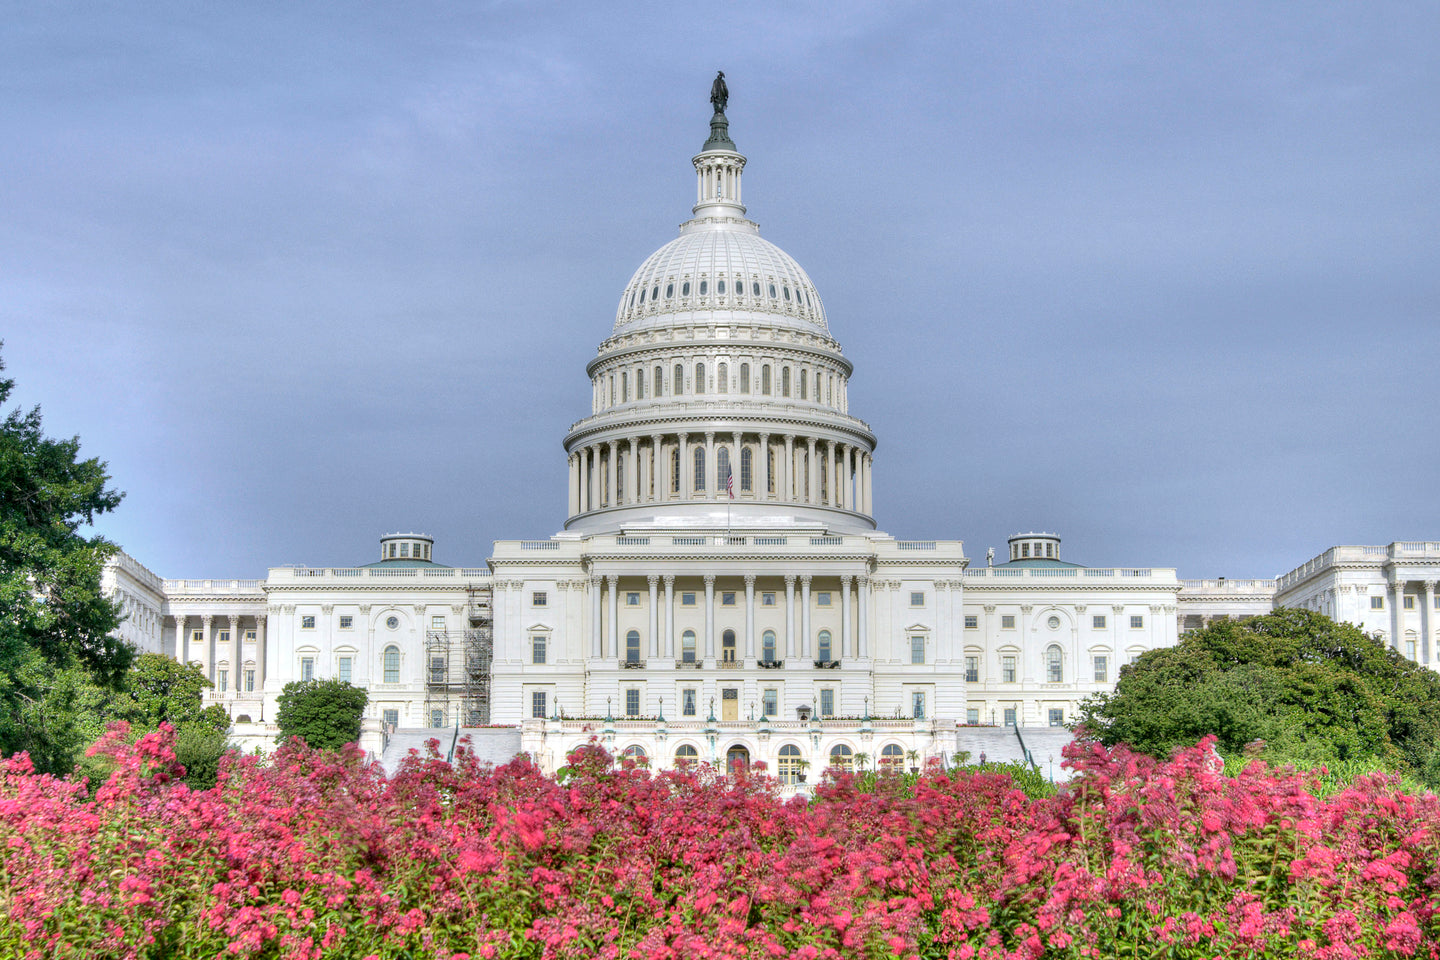 Capitol in Bloom